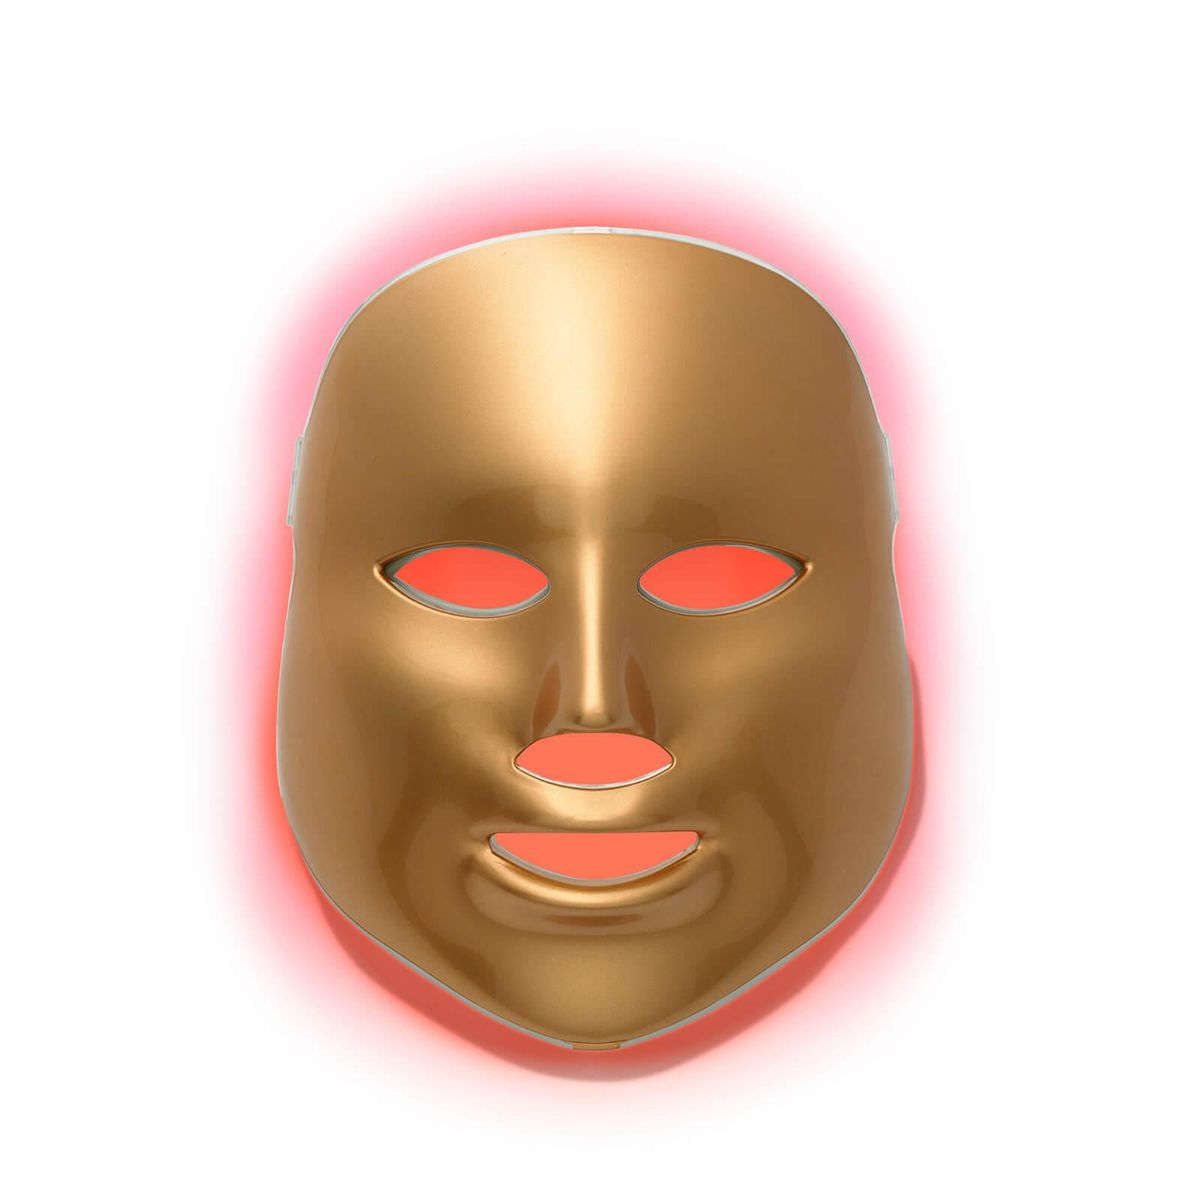 mz skin light therapy golden facial treatment device